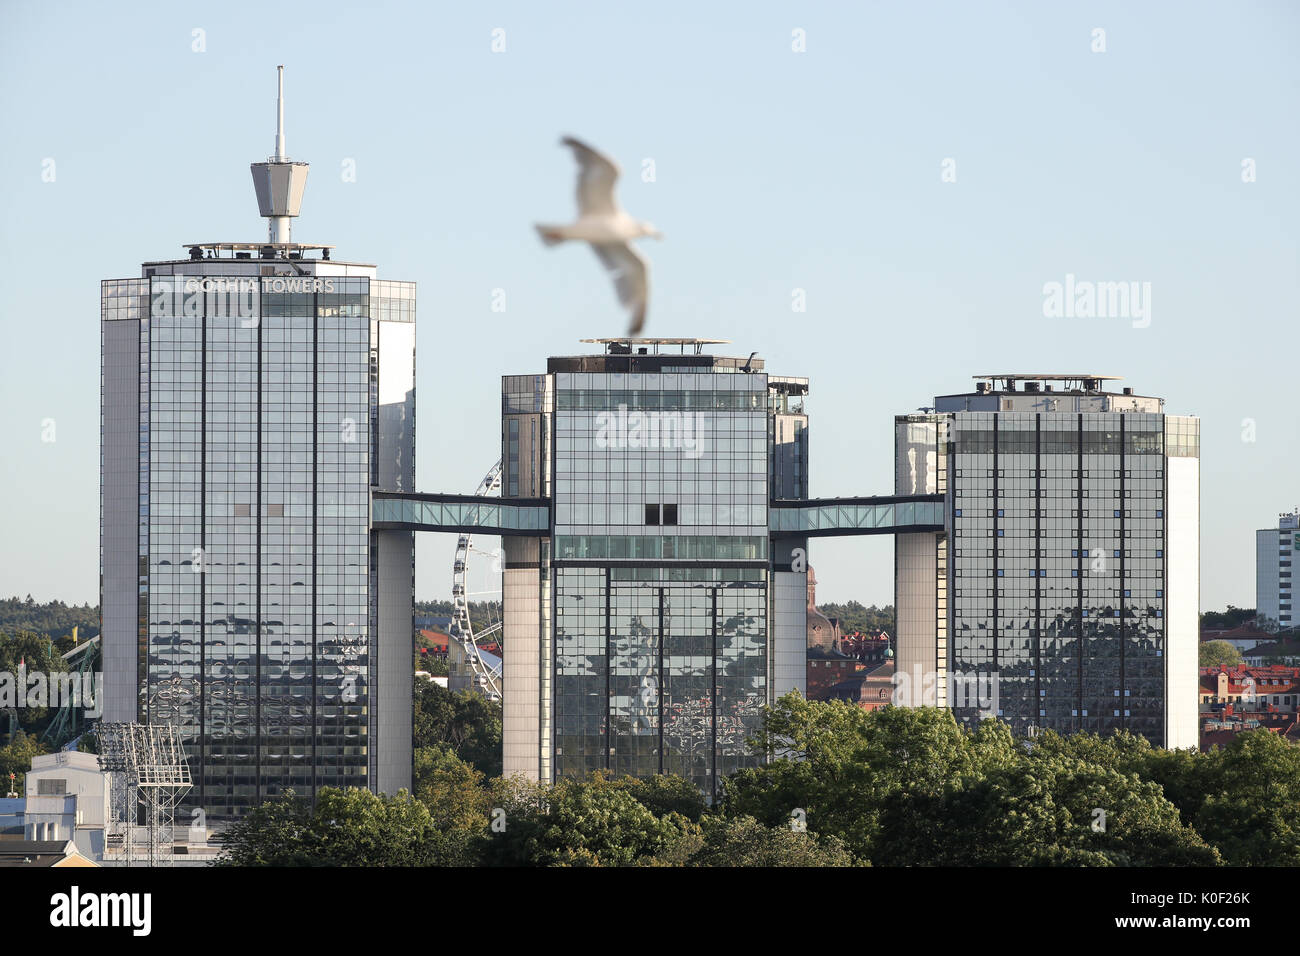 Picture of the Gothia towers taken in Goteborg, Sweden, 22 August 2017. Photo: Friso Gentsch/dpa Stock Photo